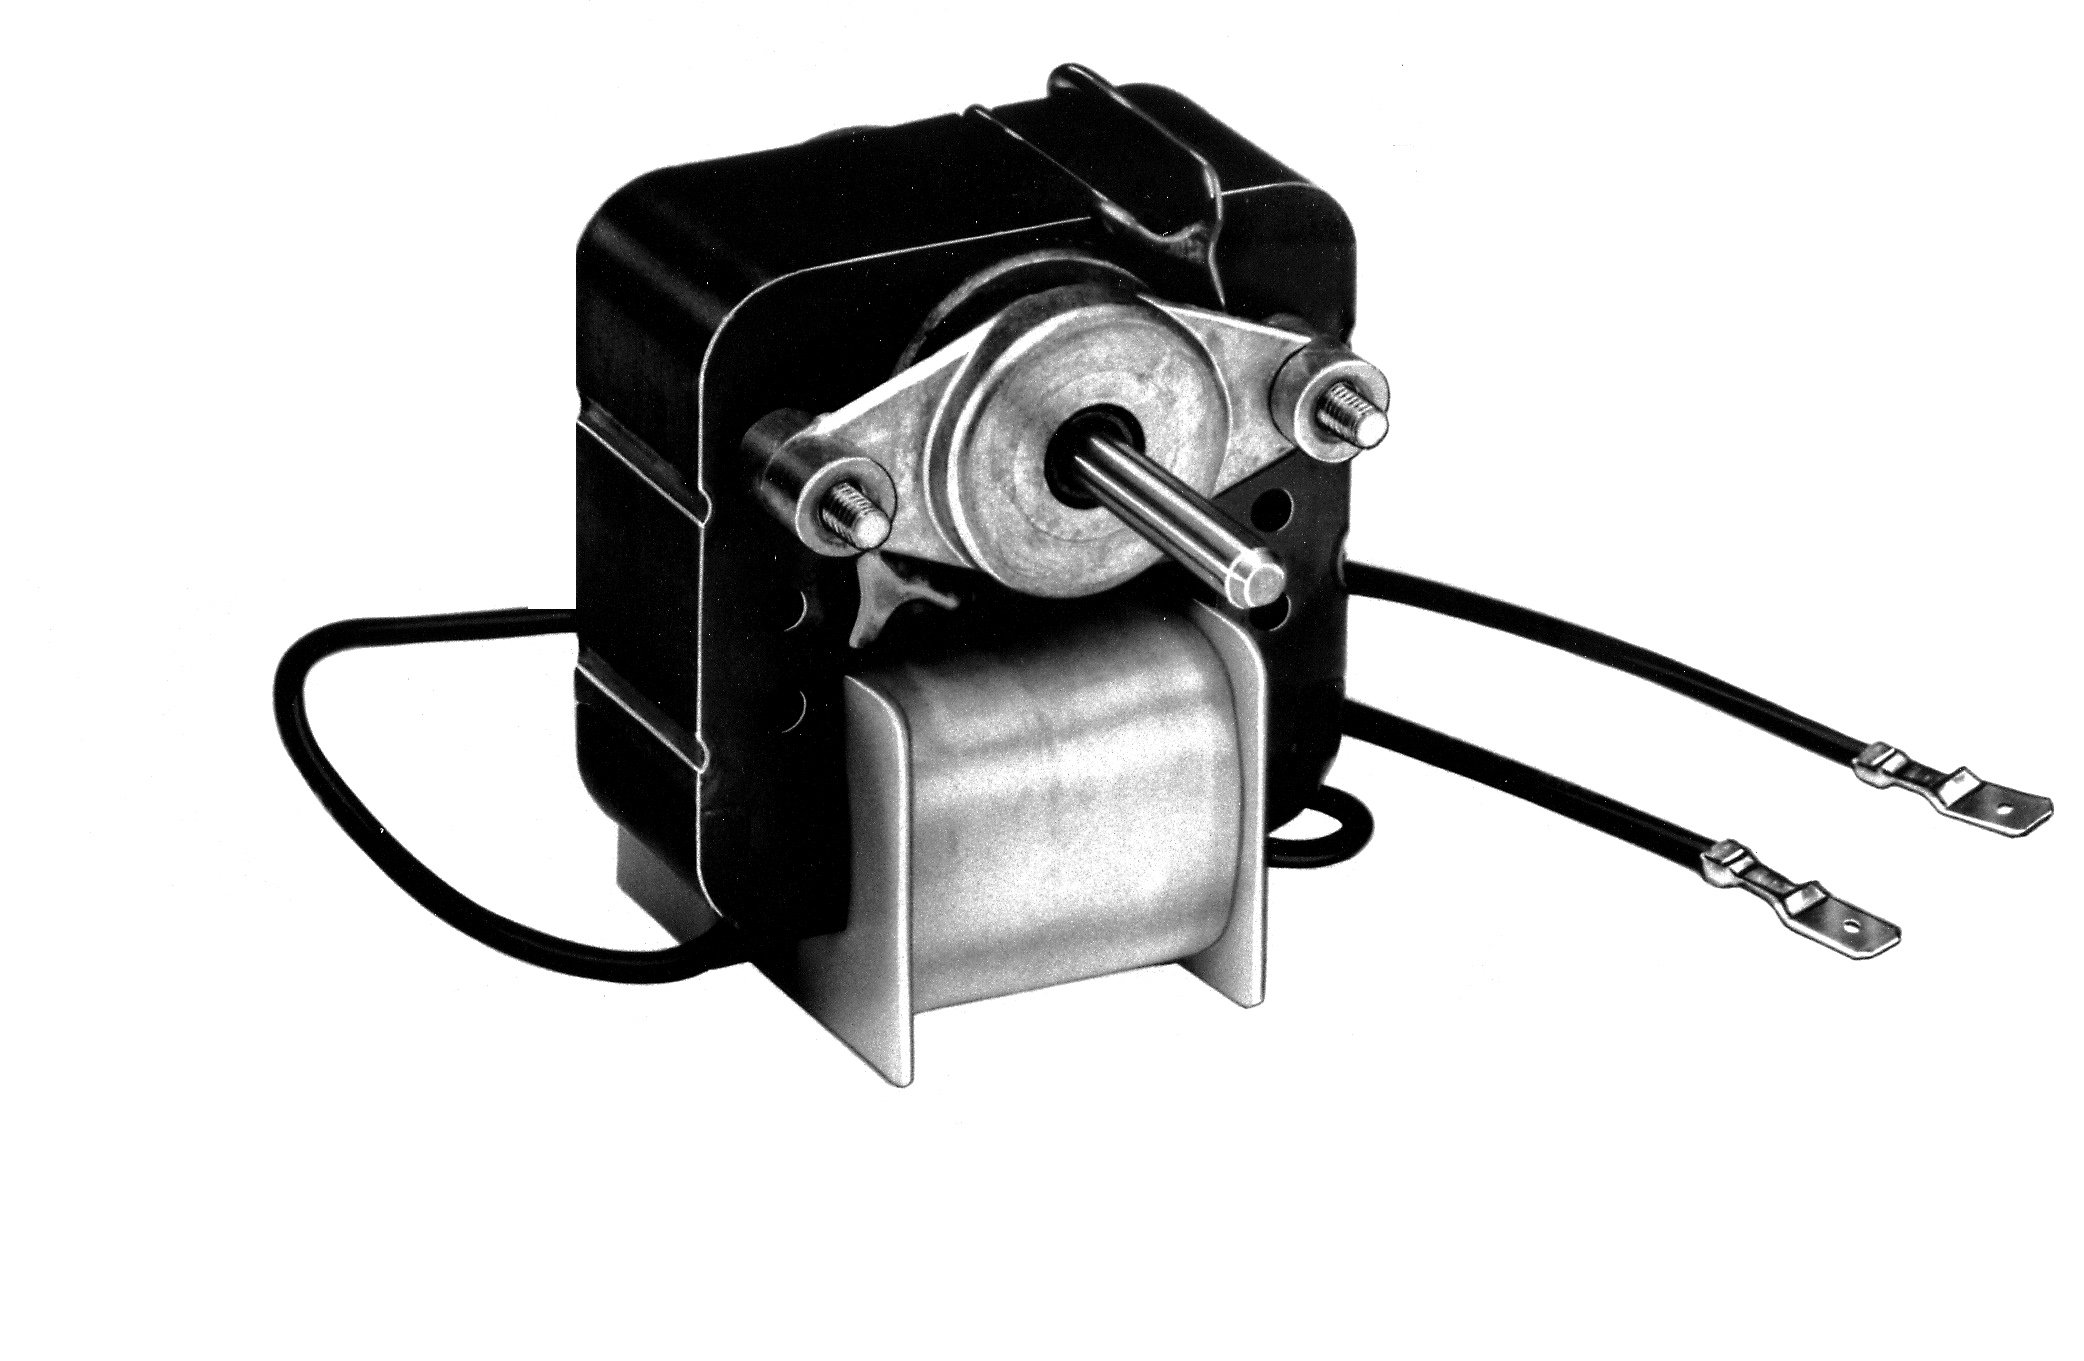 Fasco K161 C Frame Open K Line Shaded Pole OEM Replacement Electric Motor with Sleeve Bearing, 1/50HP, 3000rpm, 115VAC, 60Hz, 0.9 amps, For Icemaker